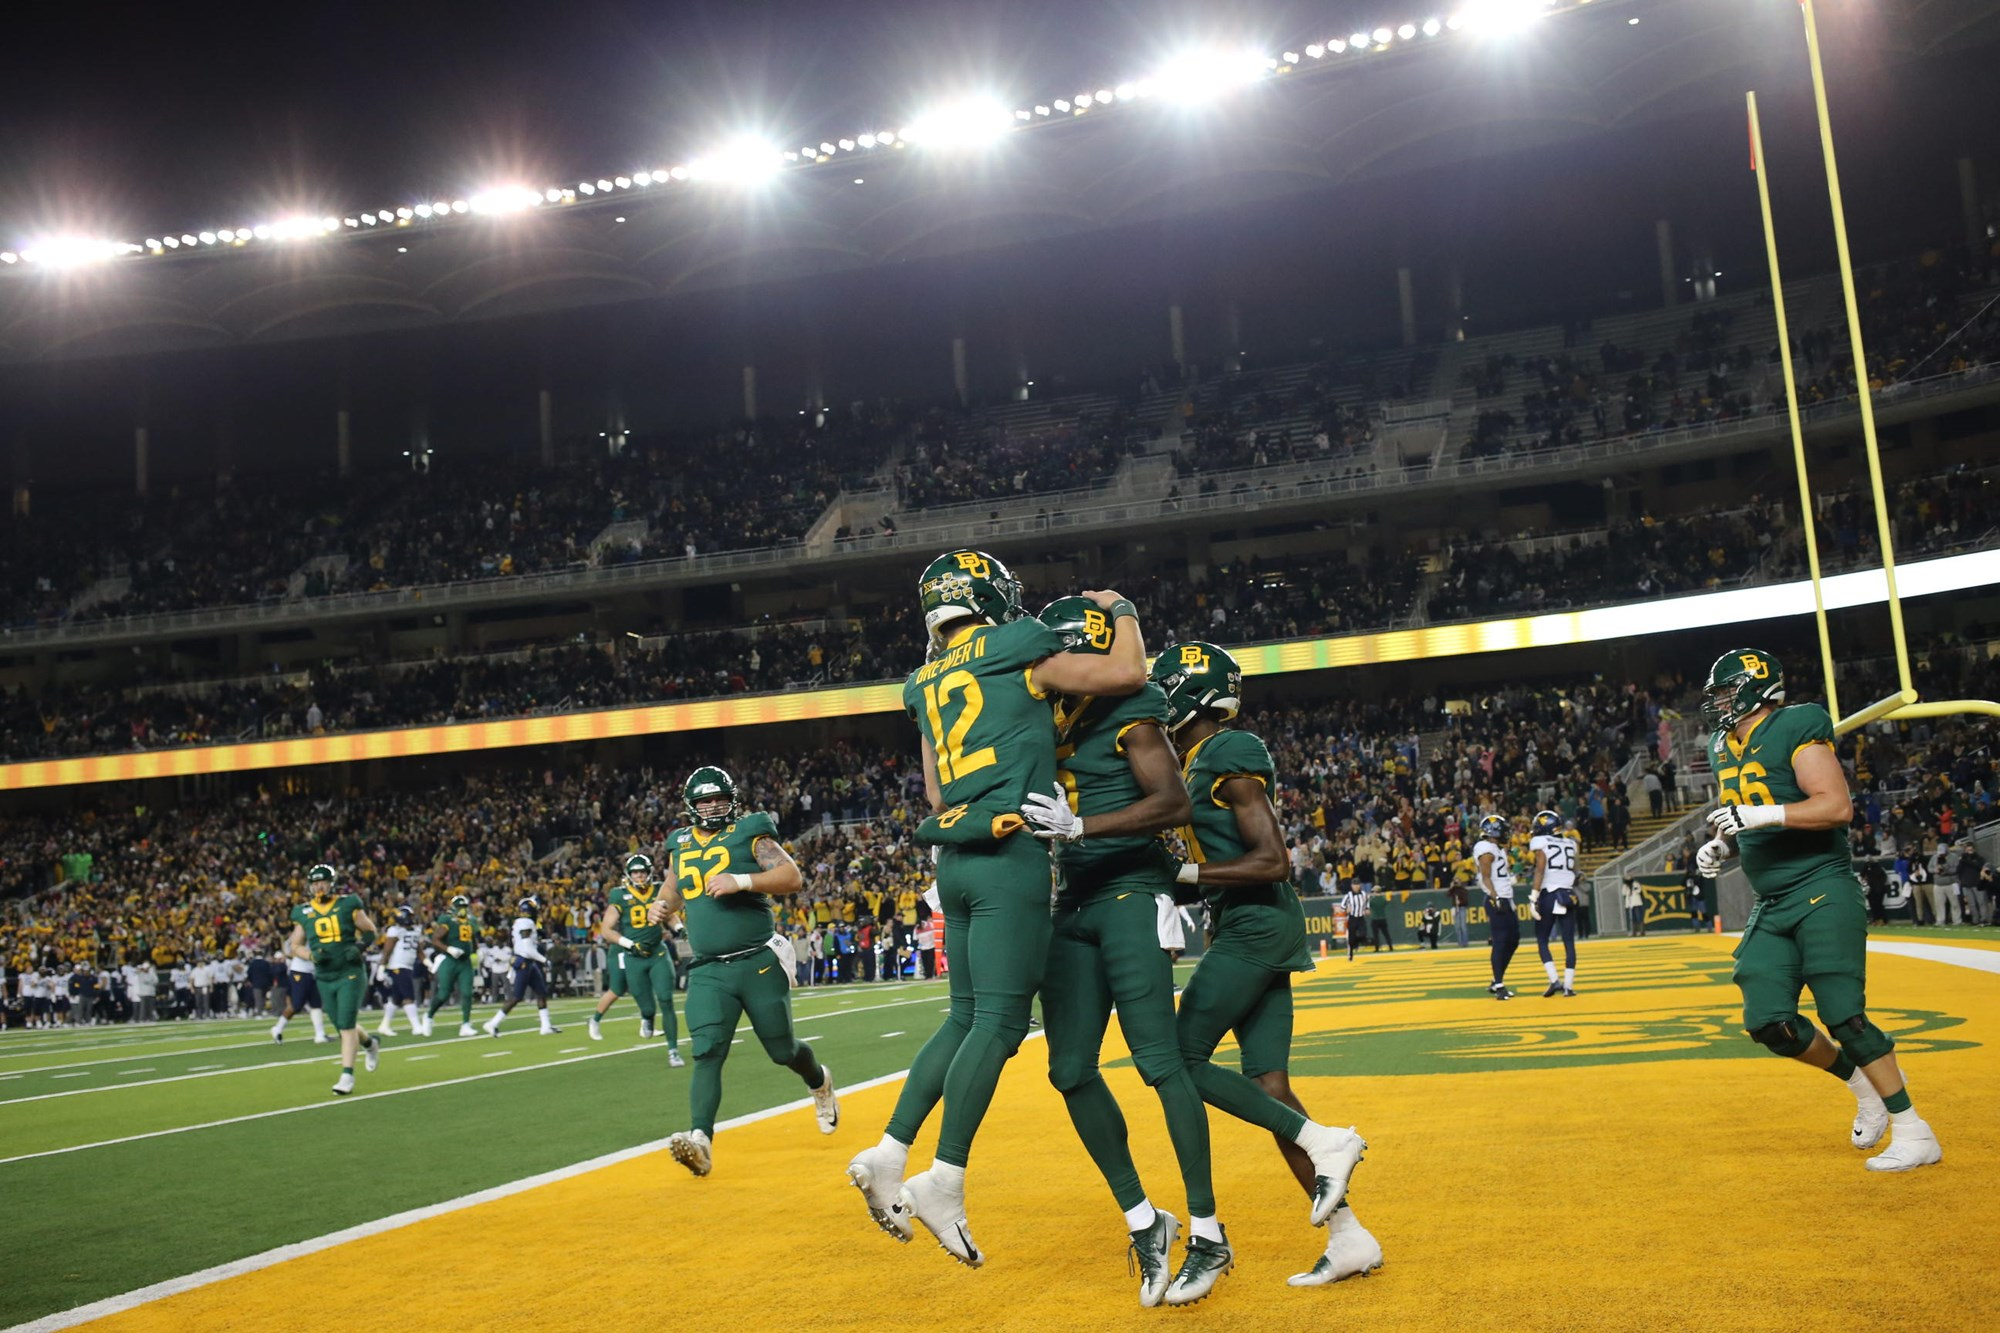 No 10 12 Football Hosts Oklahoma With Gameday In Town Baylor University Athletics